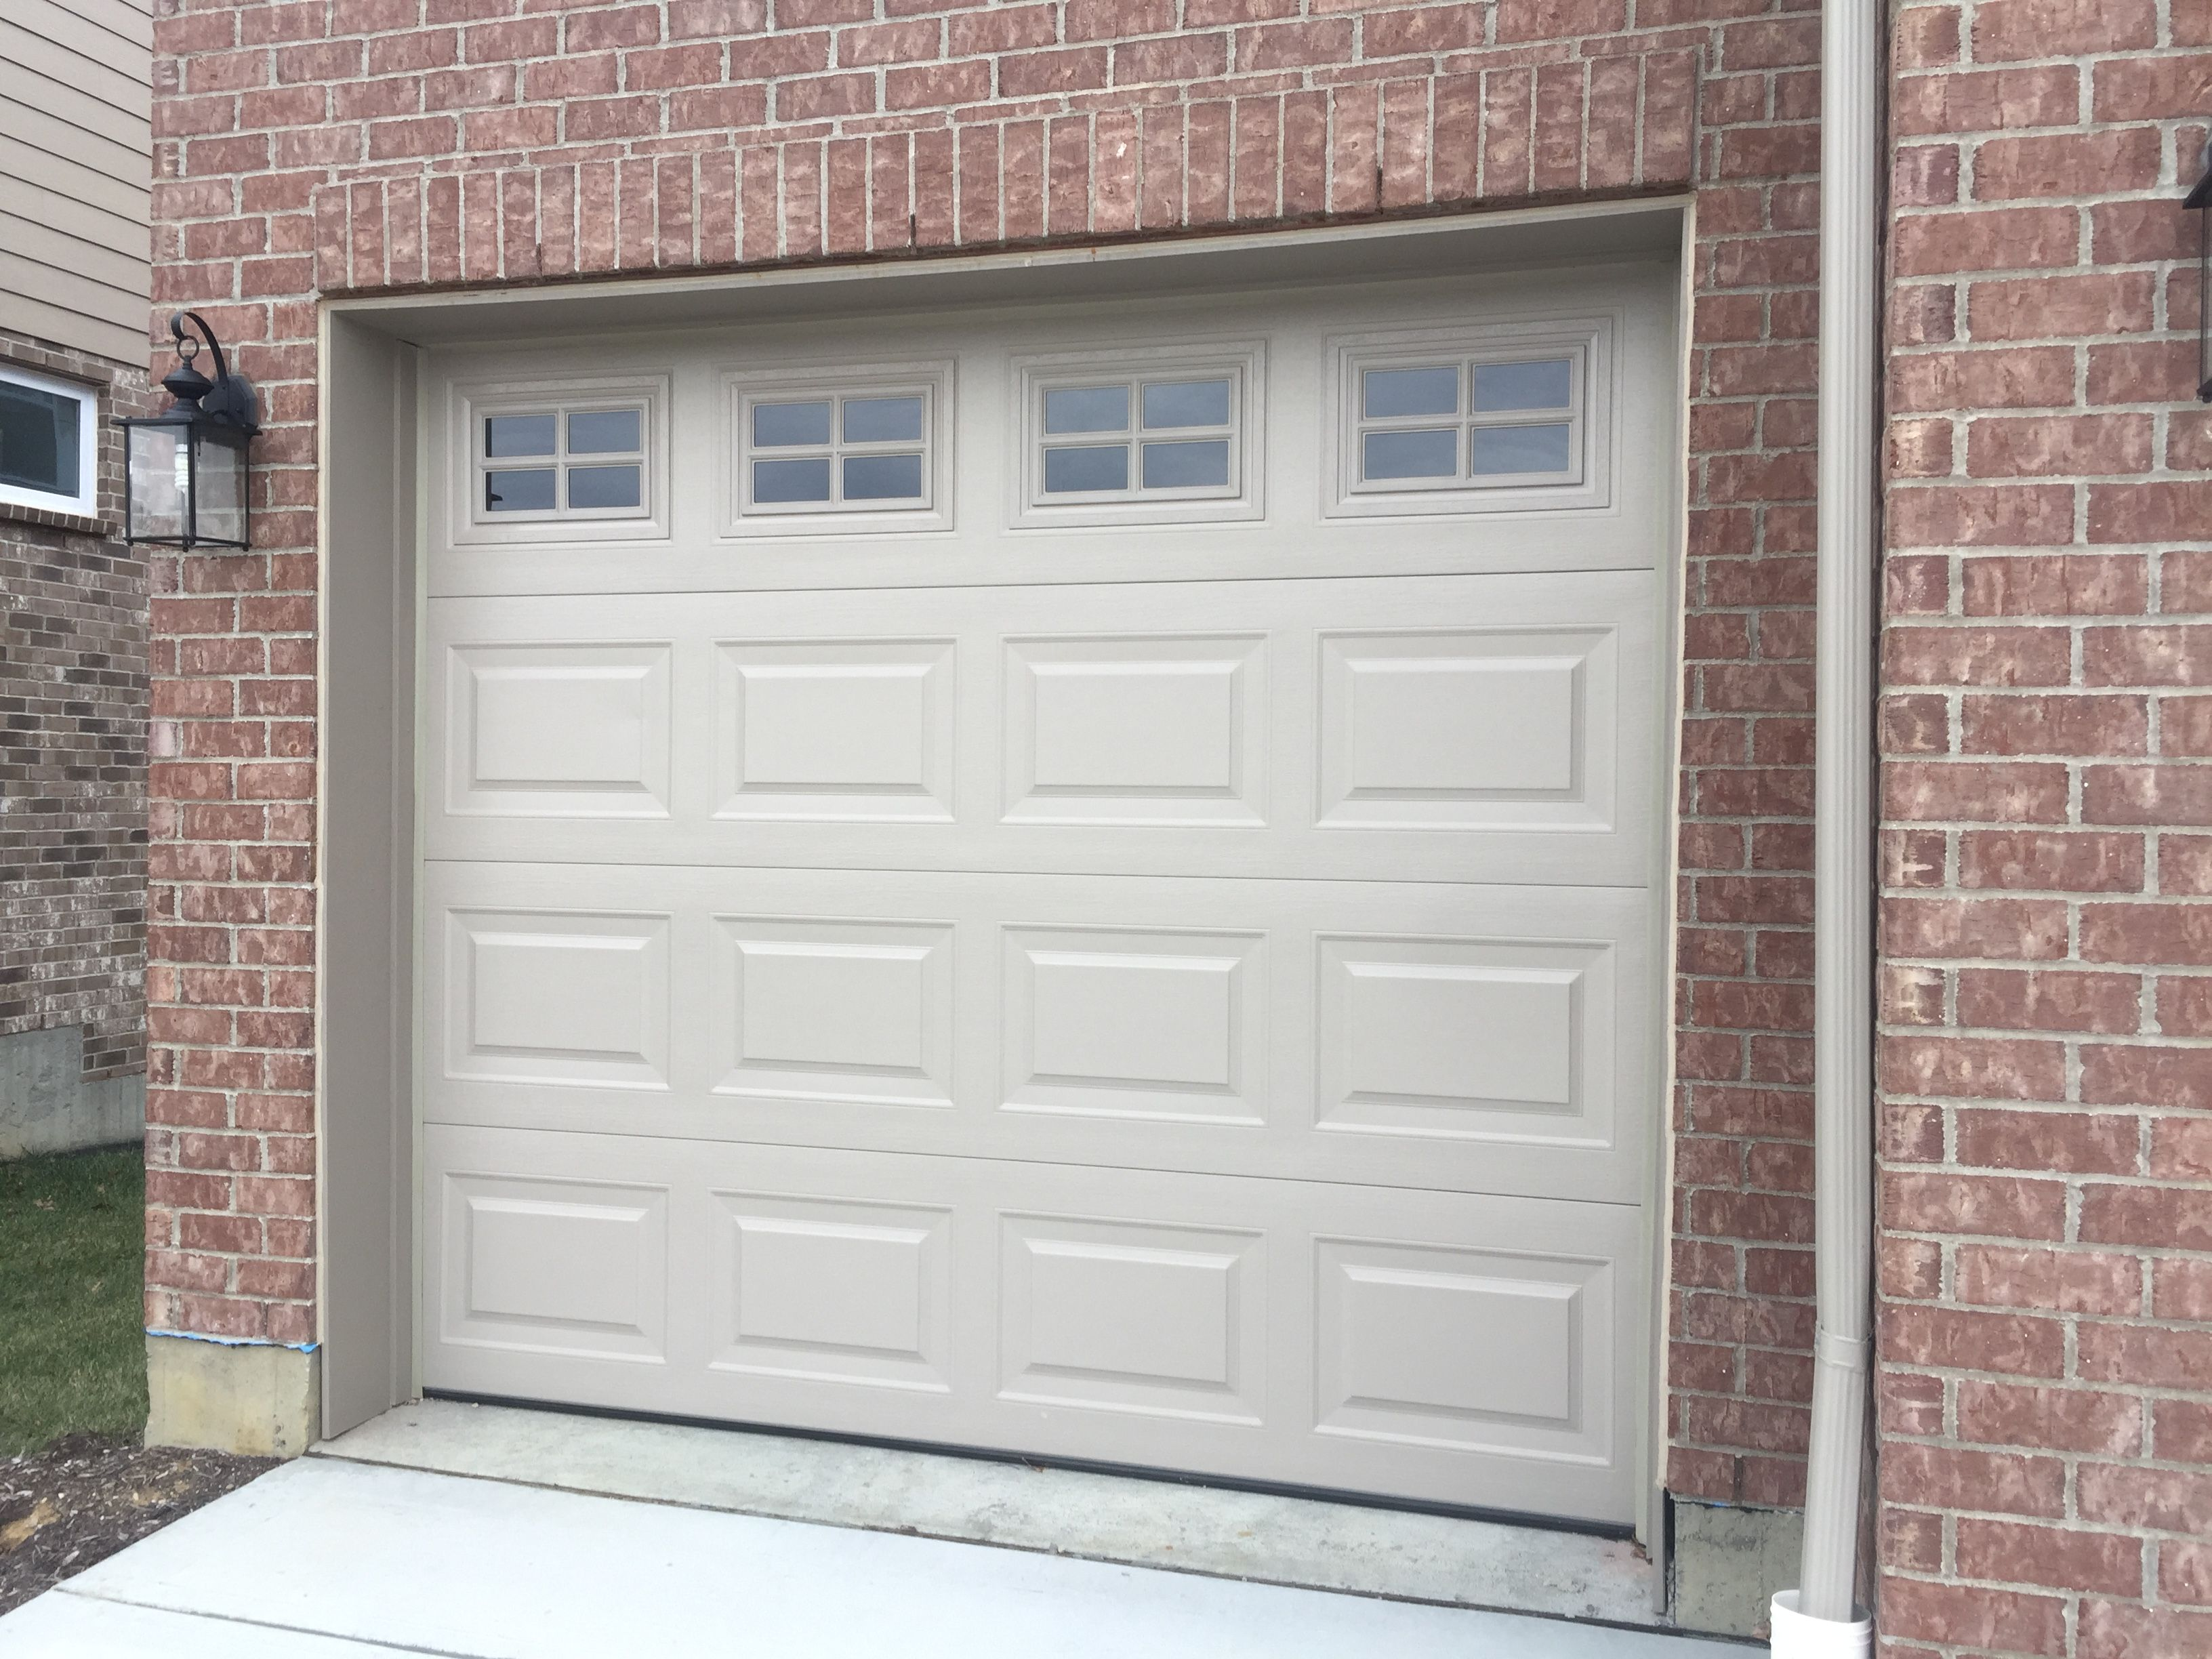 Sandstone Garage Door With Windows Garage Doors Garage Door Windows Front Door Makeover